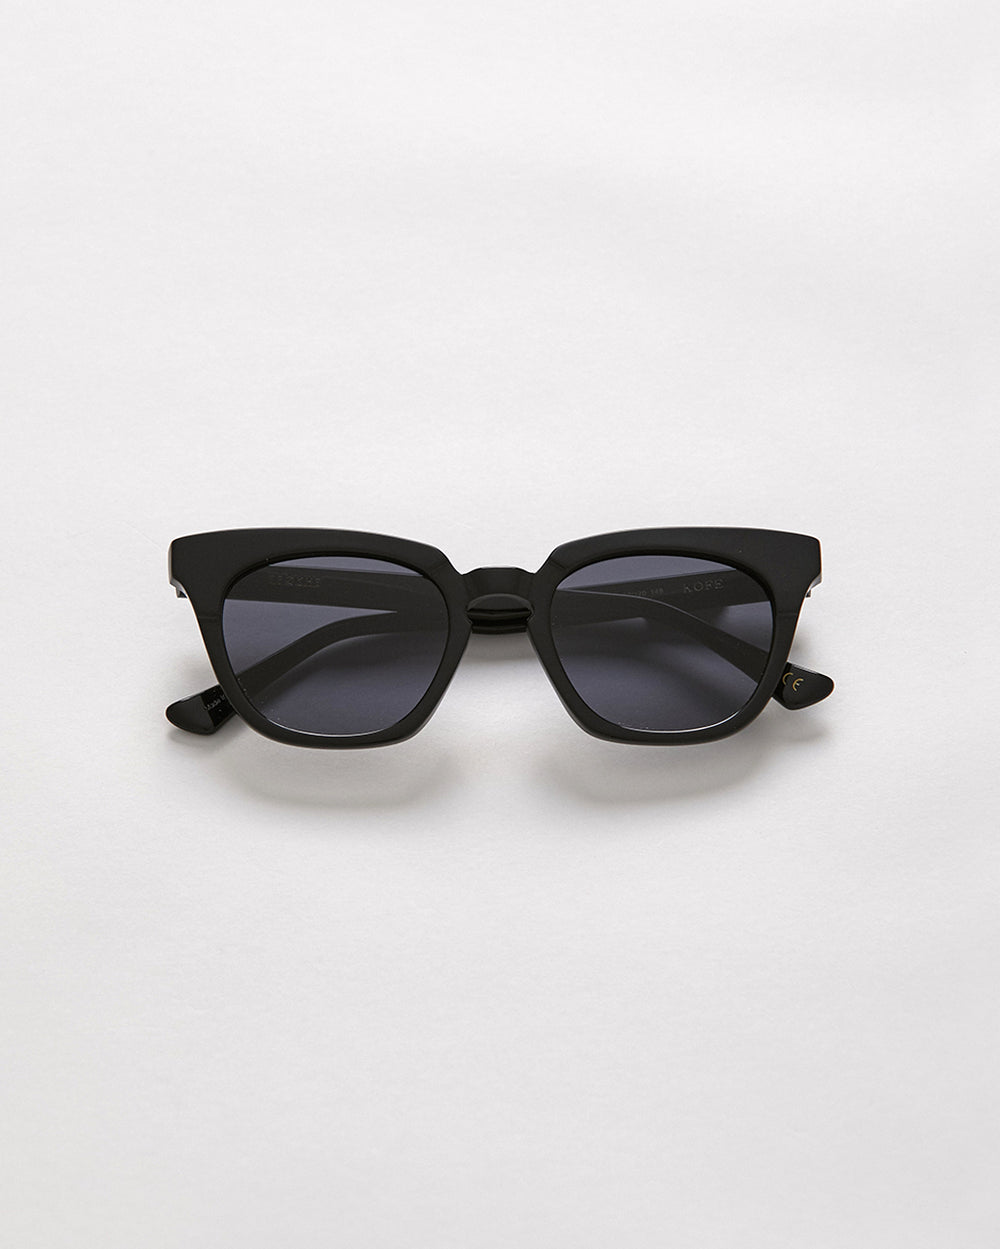 Kofe - Black Polished / Black